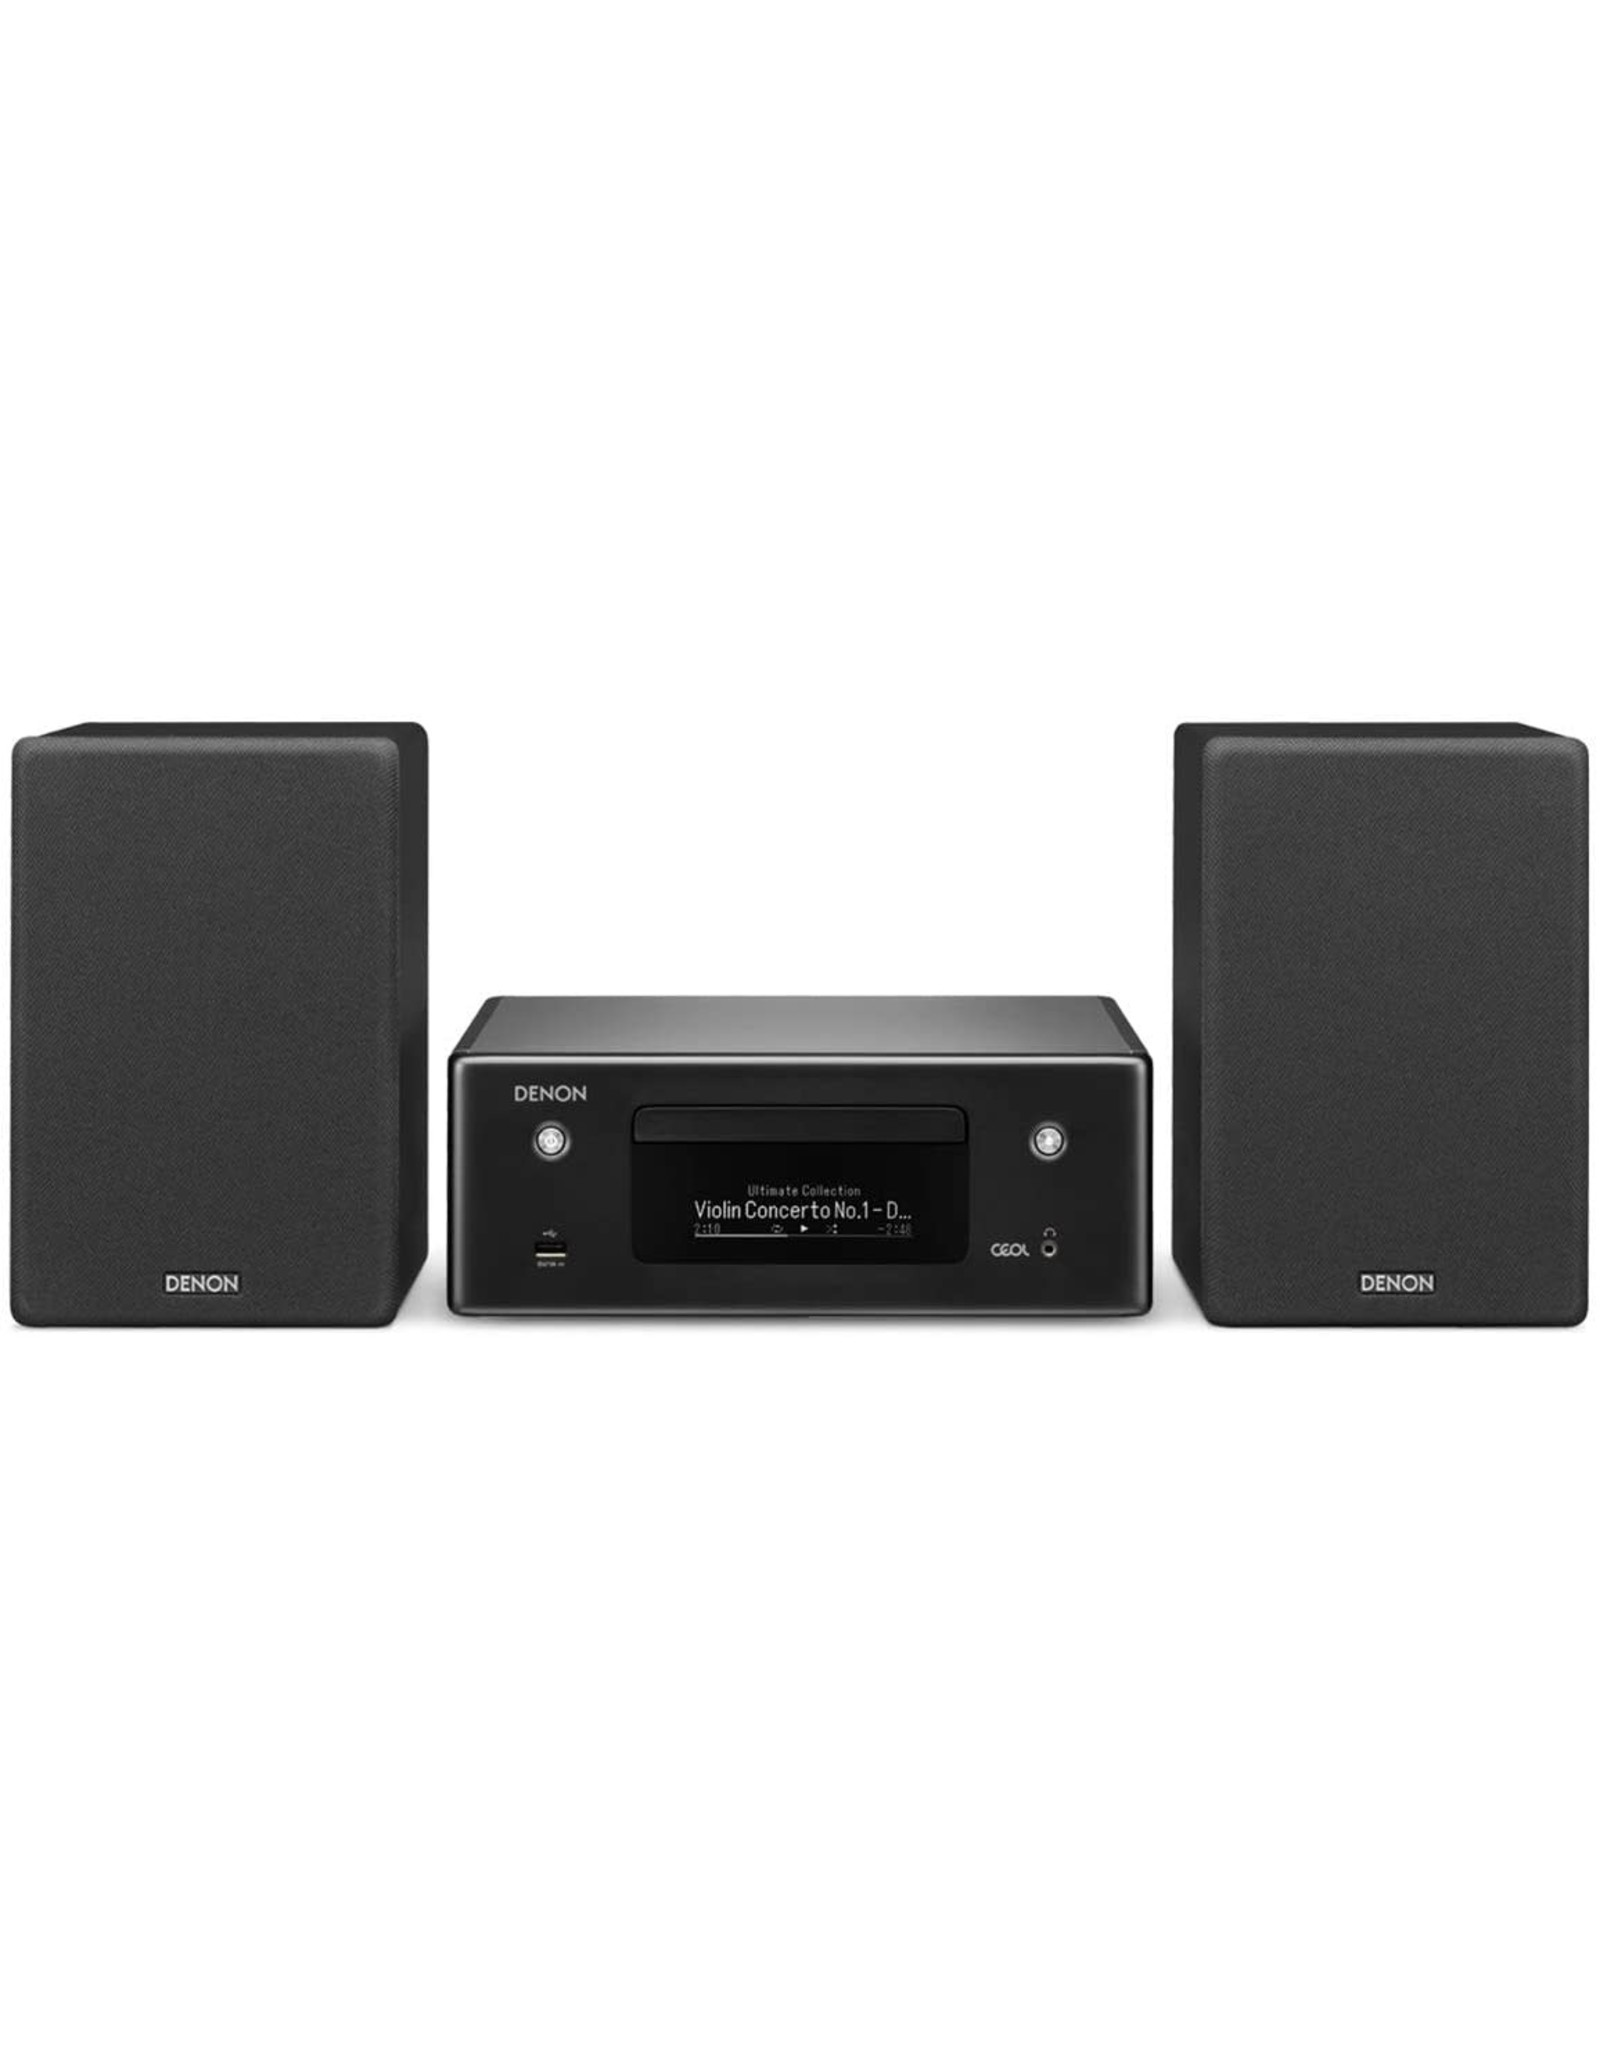 Denon Denon CEOL-N10 HEOS Network CD Mini System With Speakers